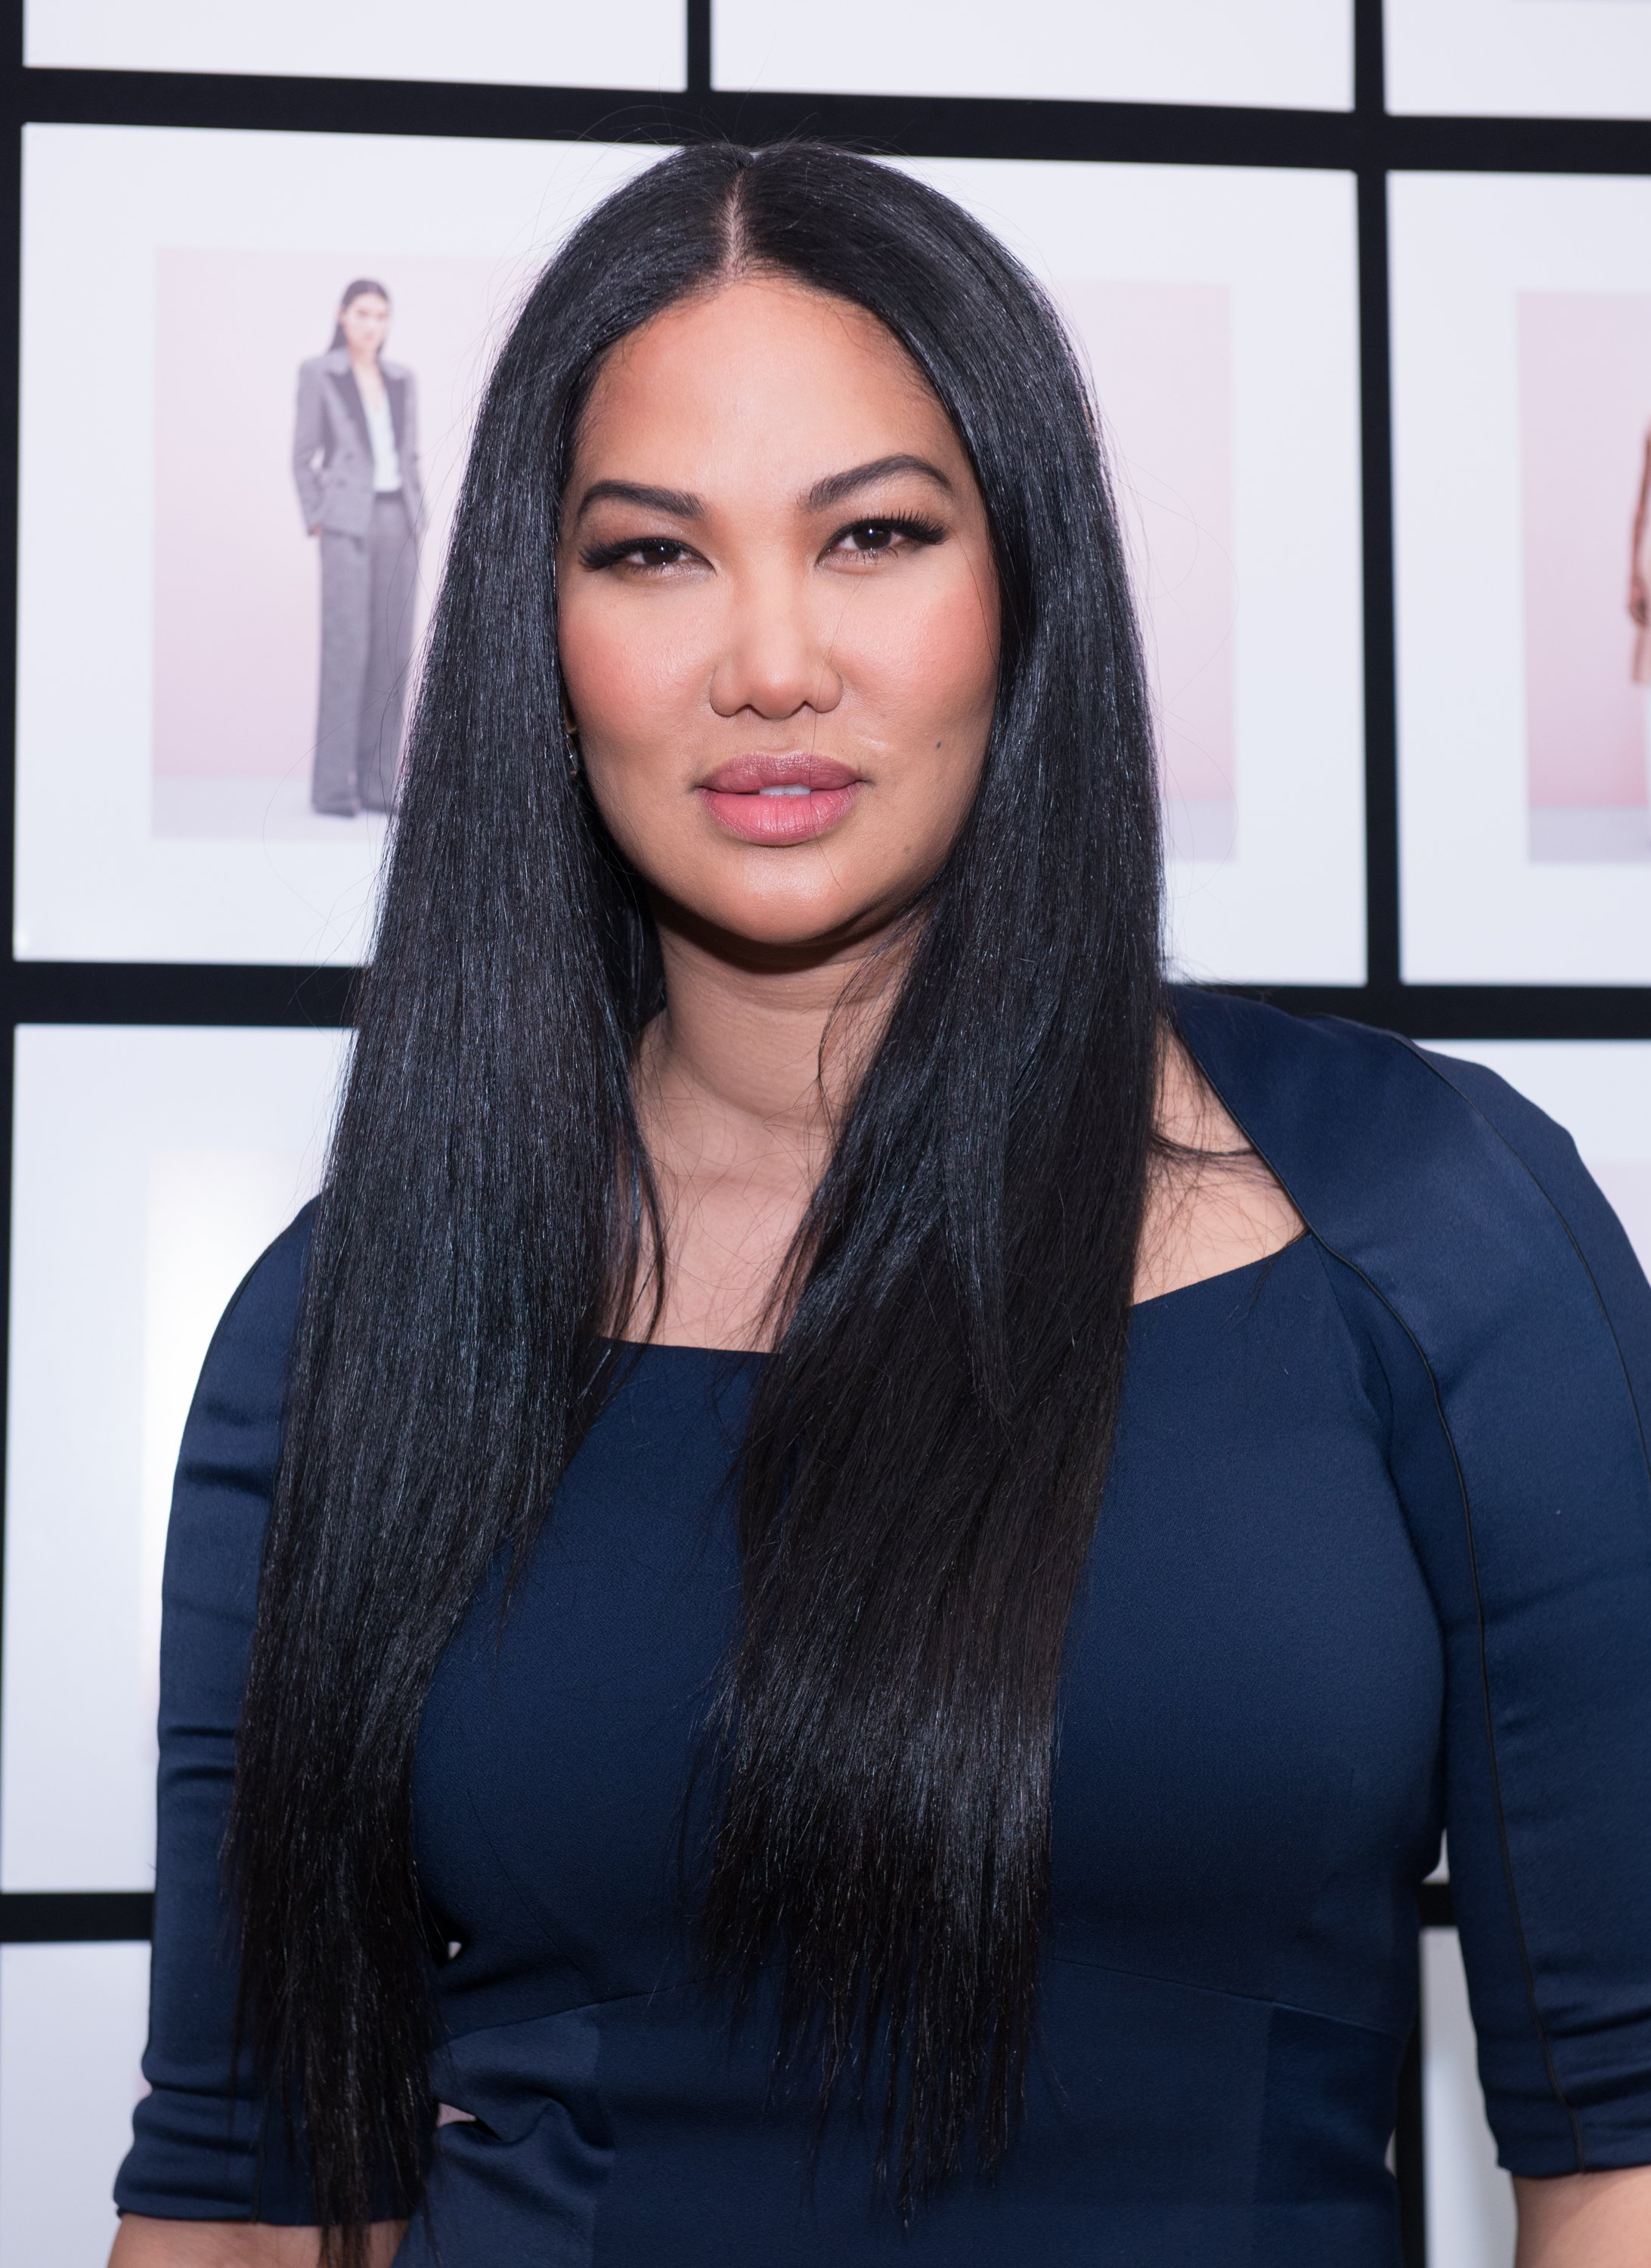 Kimora Lee Simmons at the Fall 2016 New York Fashion Week on February 12, 2016 in New York City. | Source: Getty Images